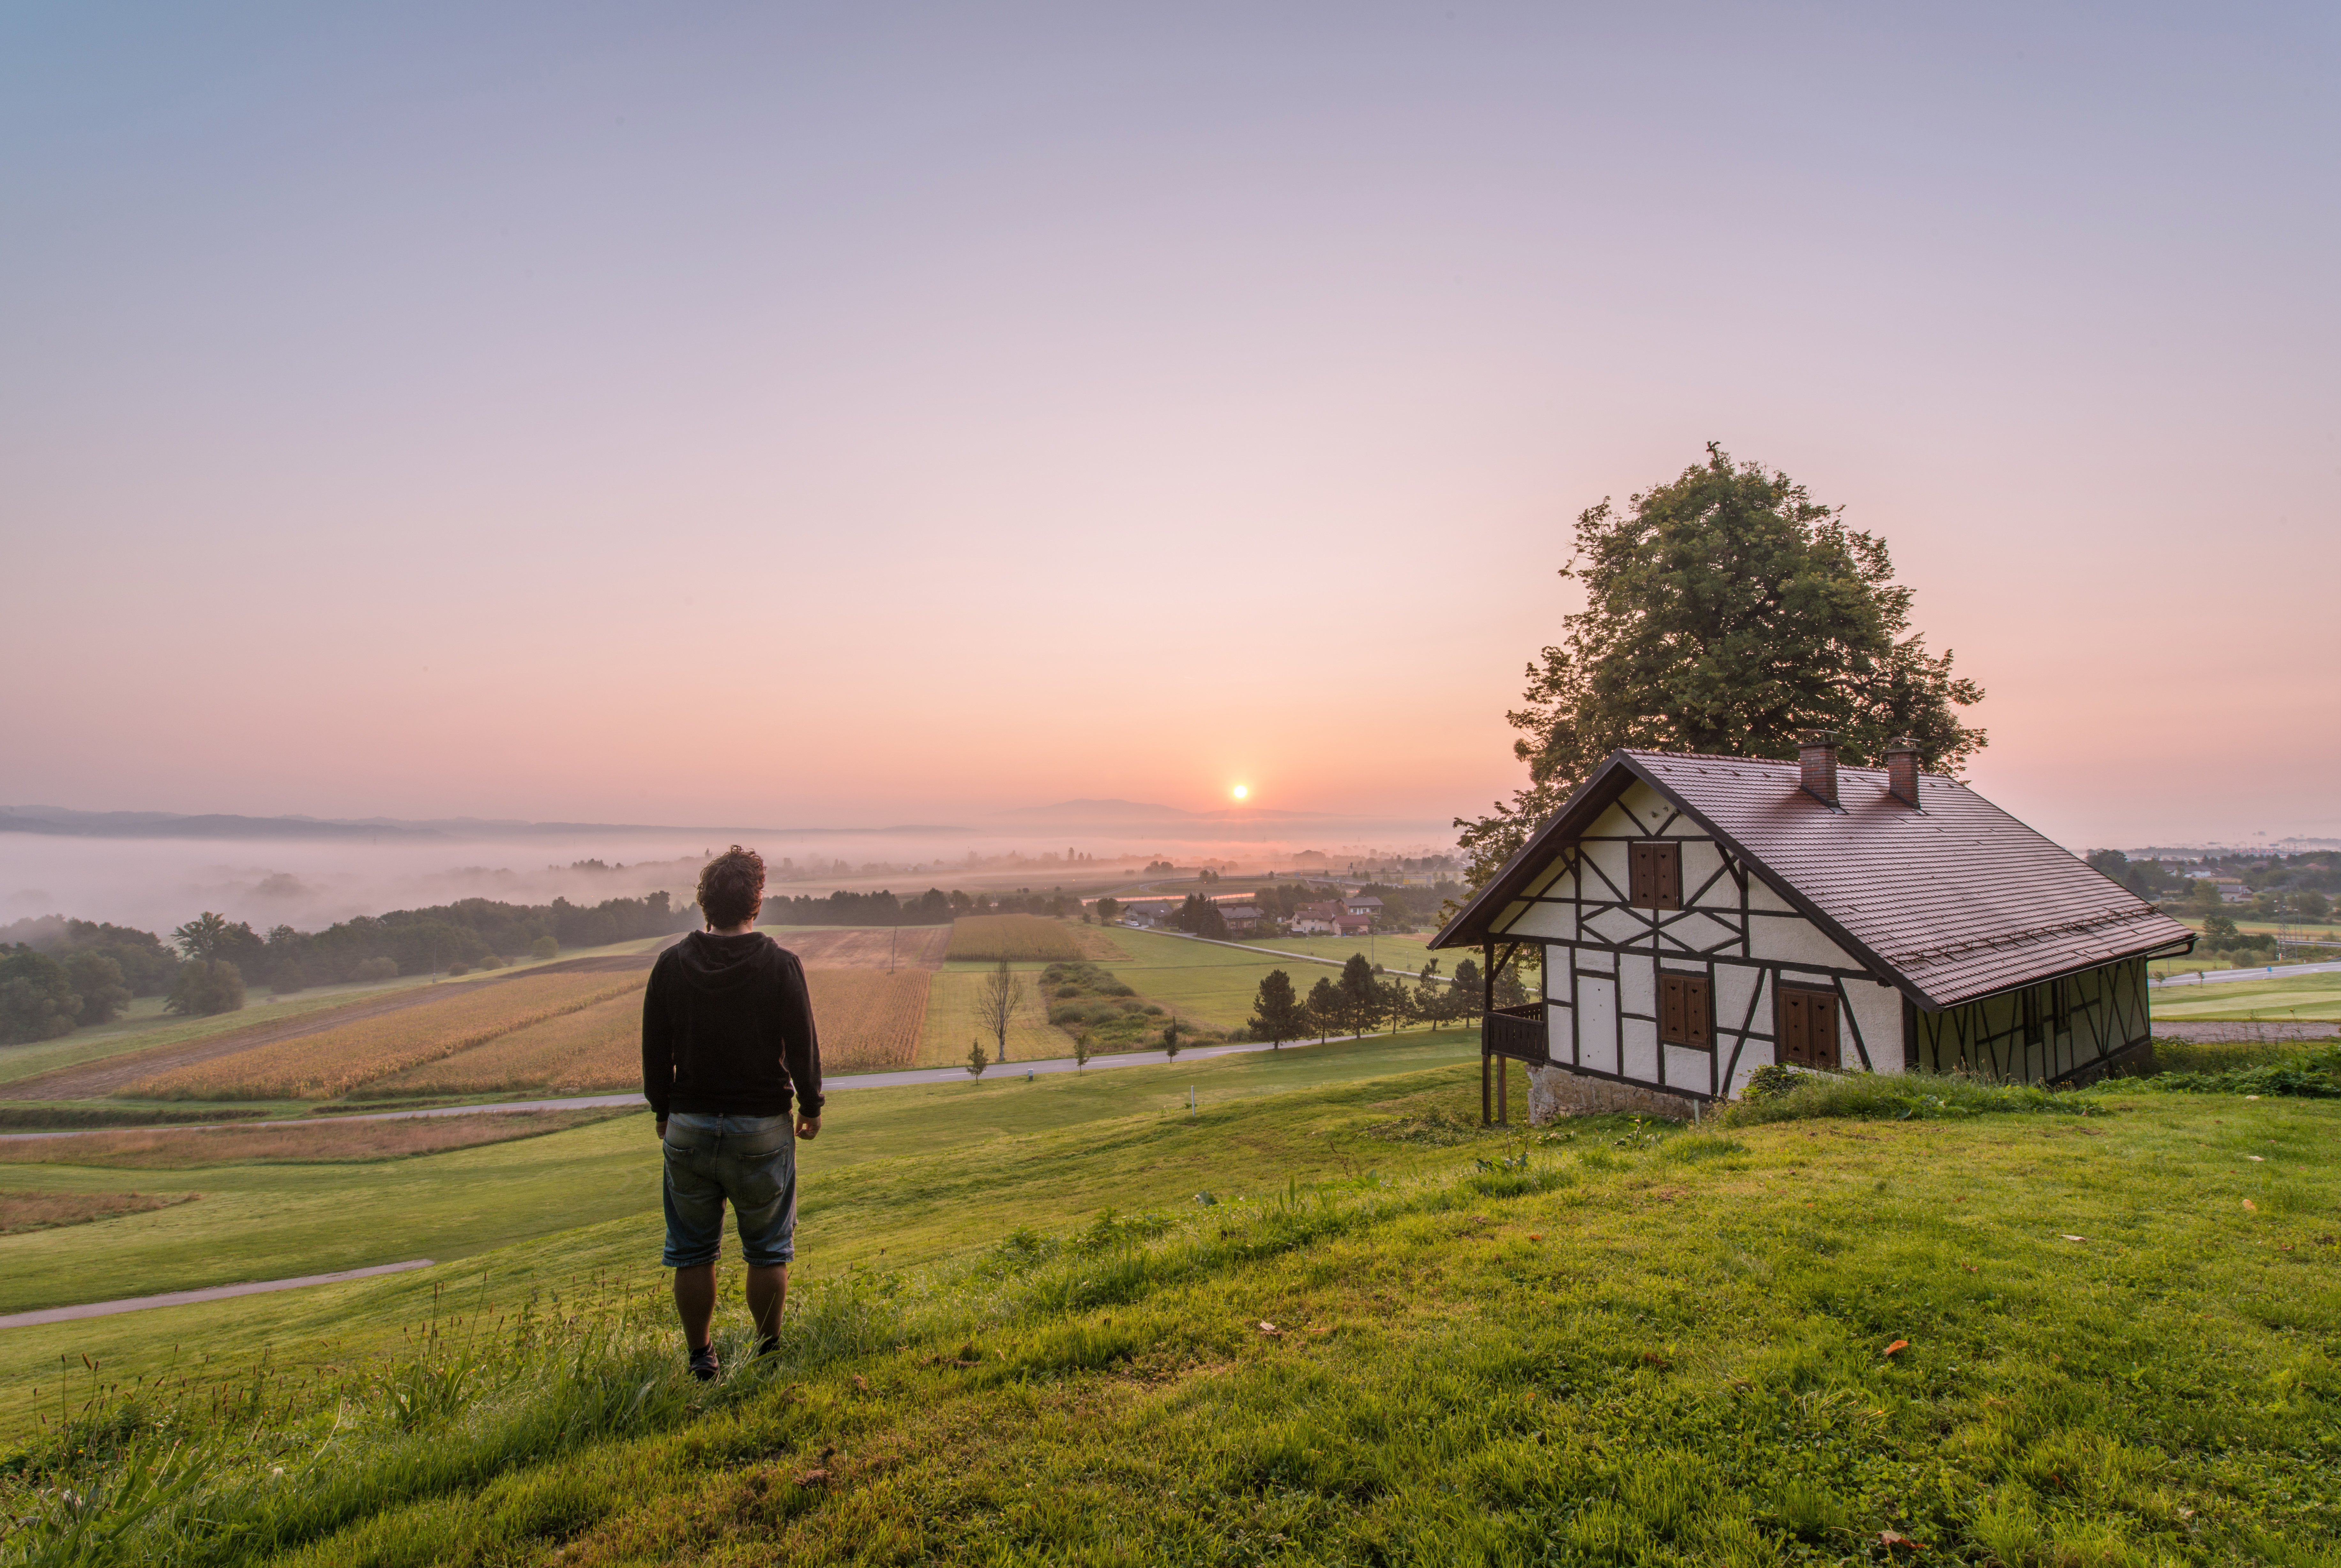 Man posing in front of beautiful sunrise by the medieval house in rural countryside of Slovenia